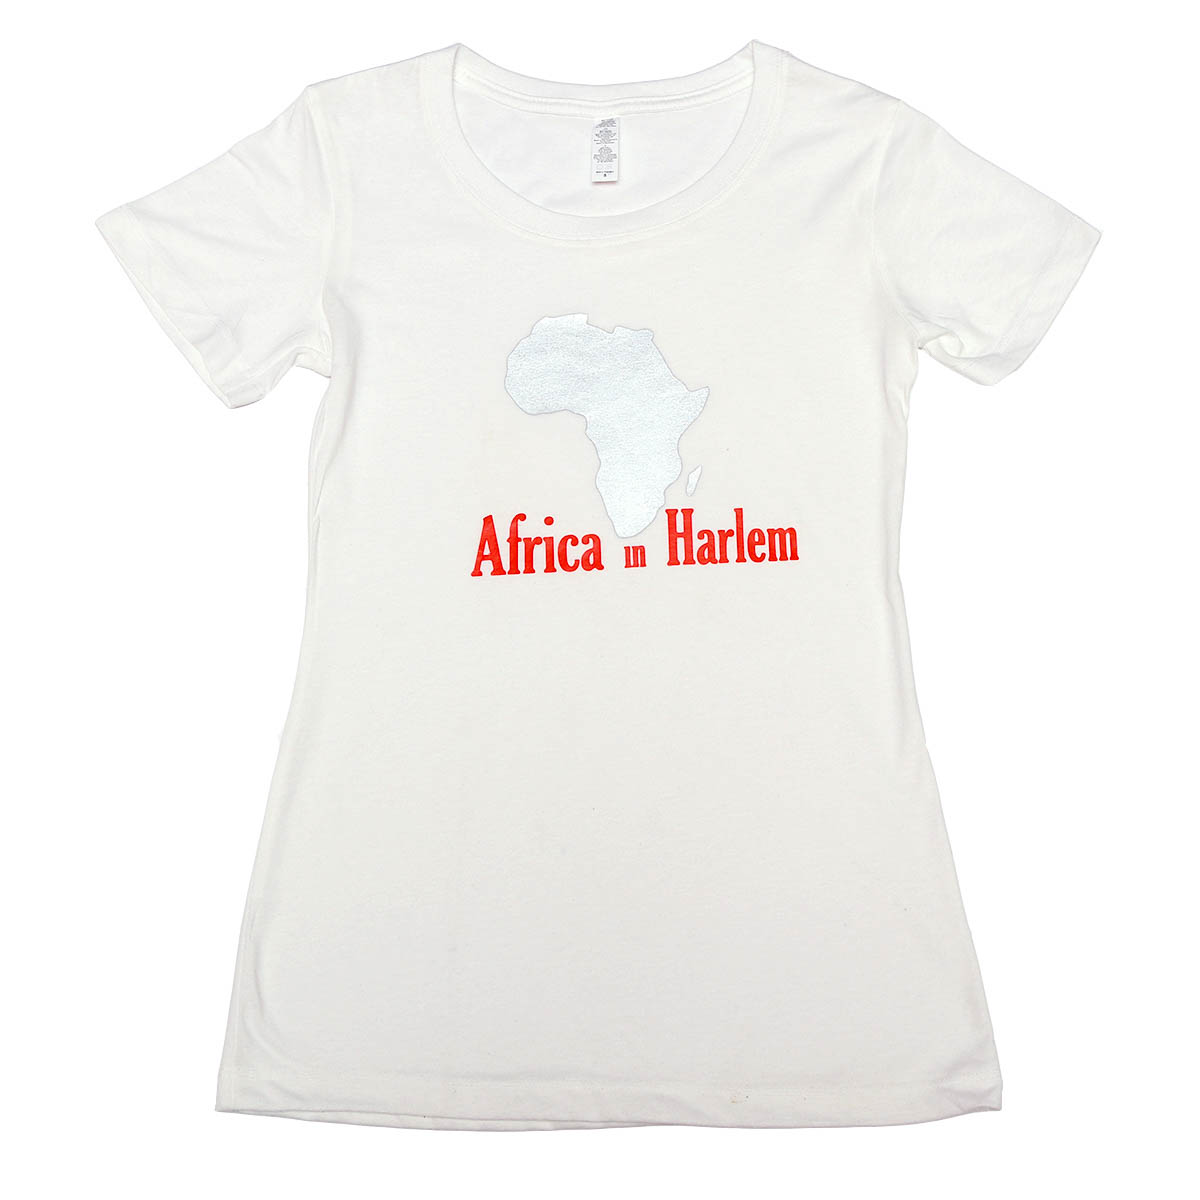 Africa in Harlem T-shirt Original White & Silver – Women